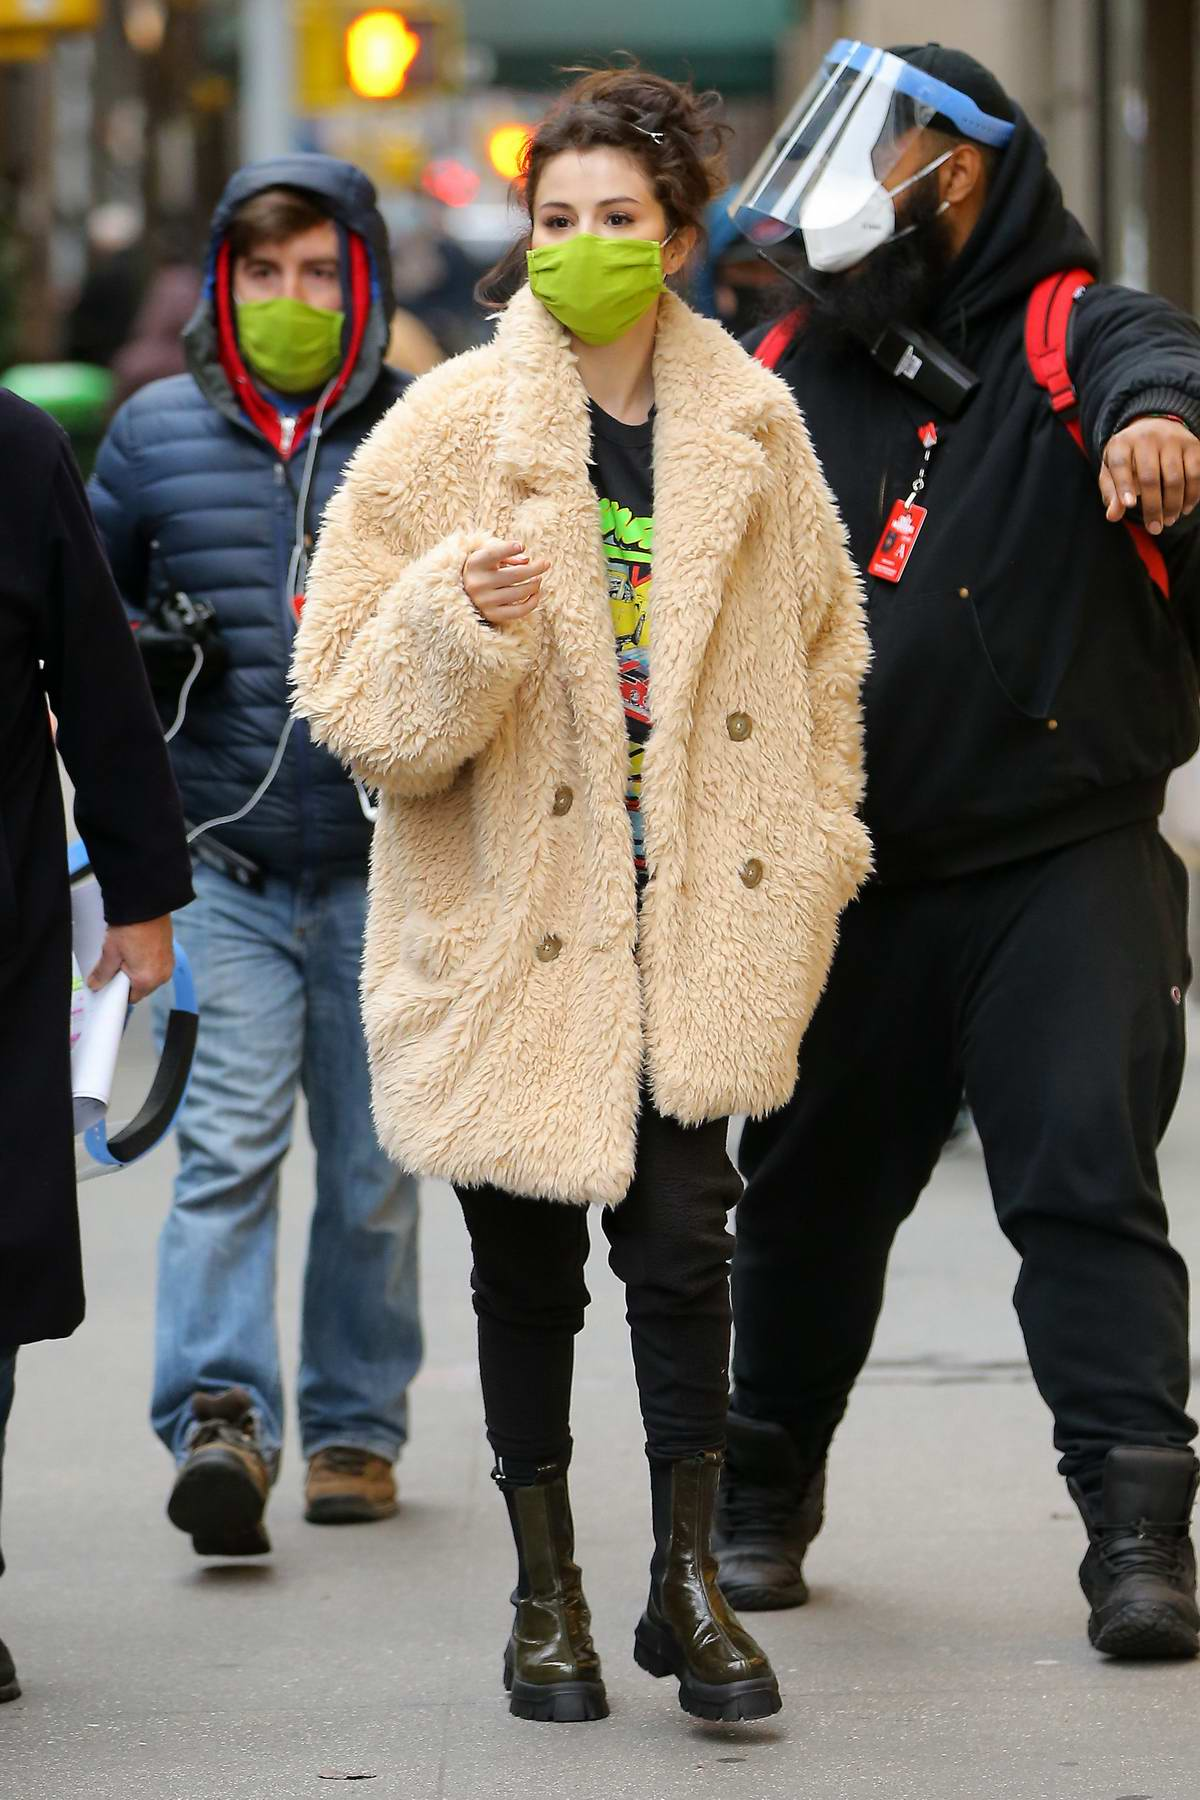 Selena Gomez stays warm in a teddy coat while filming 'Only Murders In The Building' in New York